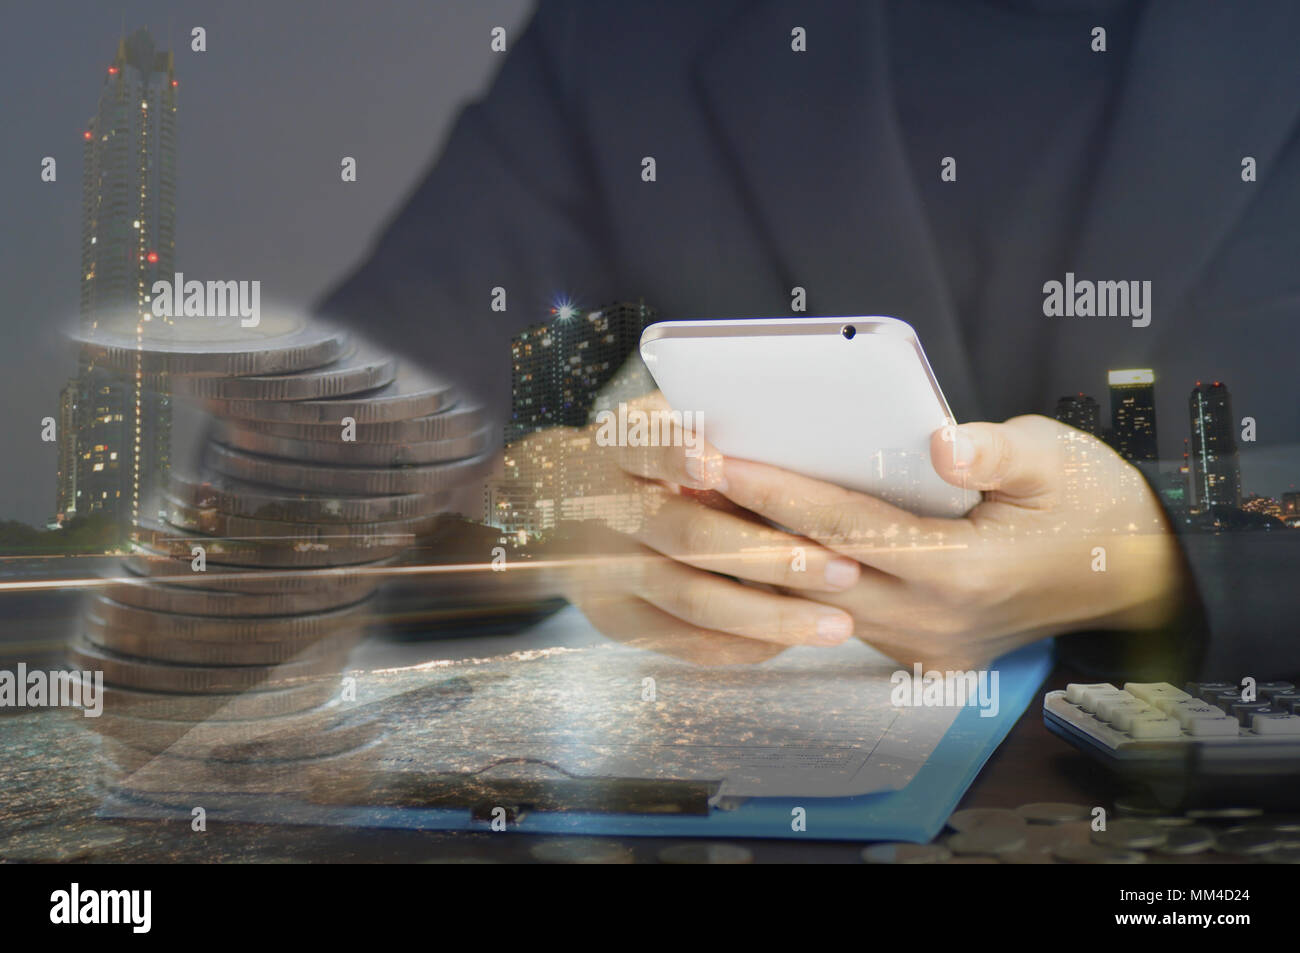 double exposure women use phone on desk and night city, concept in comunicate and contact in finace, account and business - Stock Image